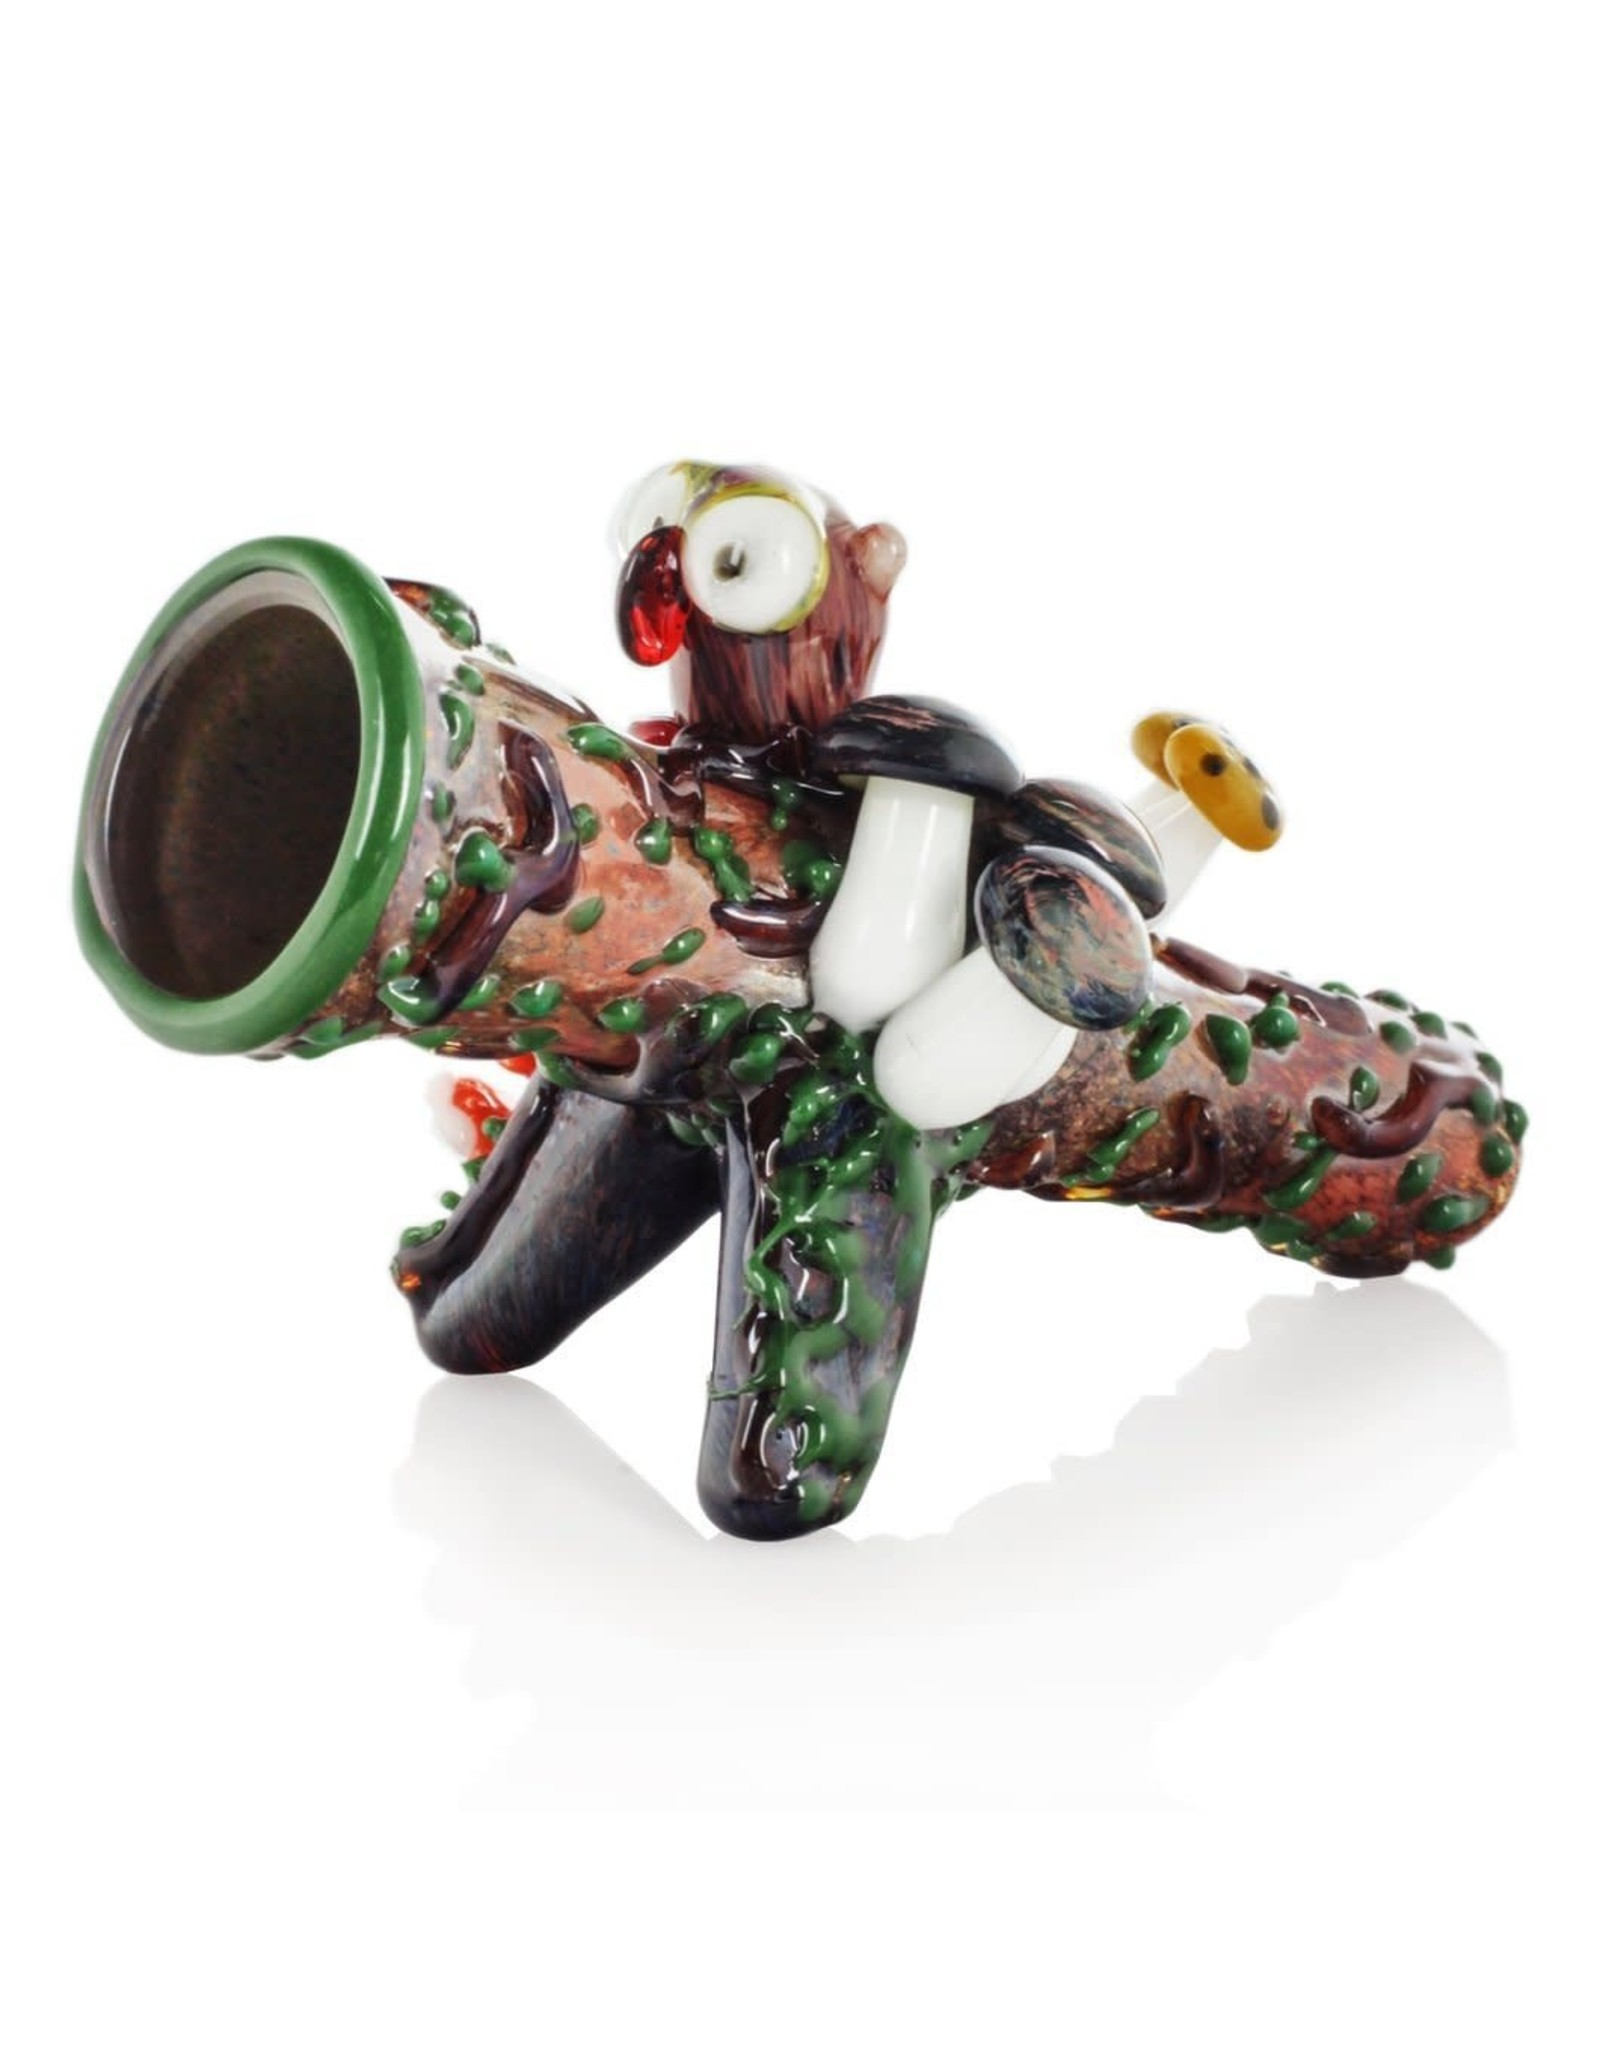 Empire Glass Hootie The Owl Chillum Pipe